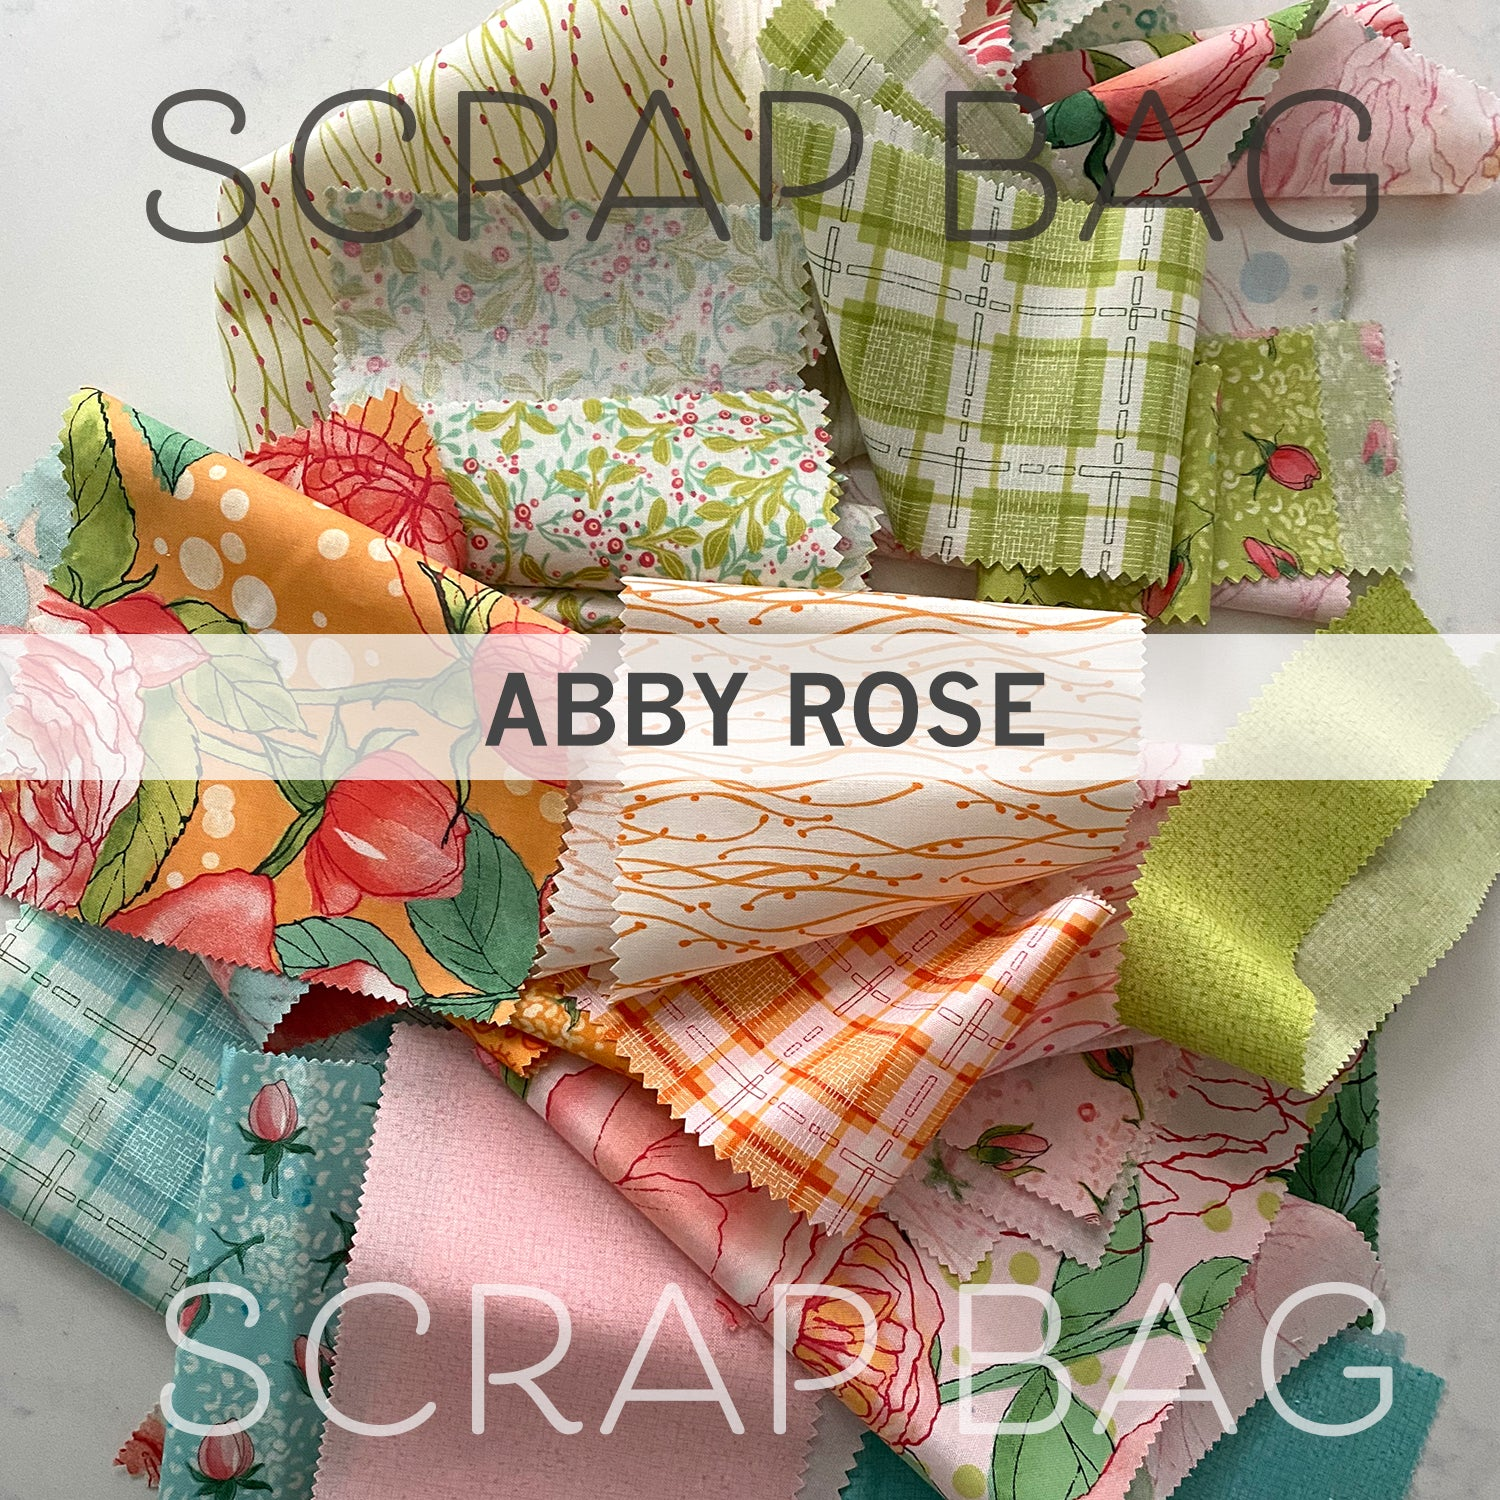 Scrap Bag of Abby Rose Quilting Fabric - Half Pound or more of Moda cotton fabric by Robin Pickens